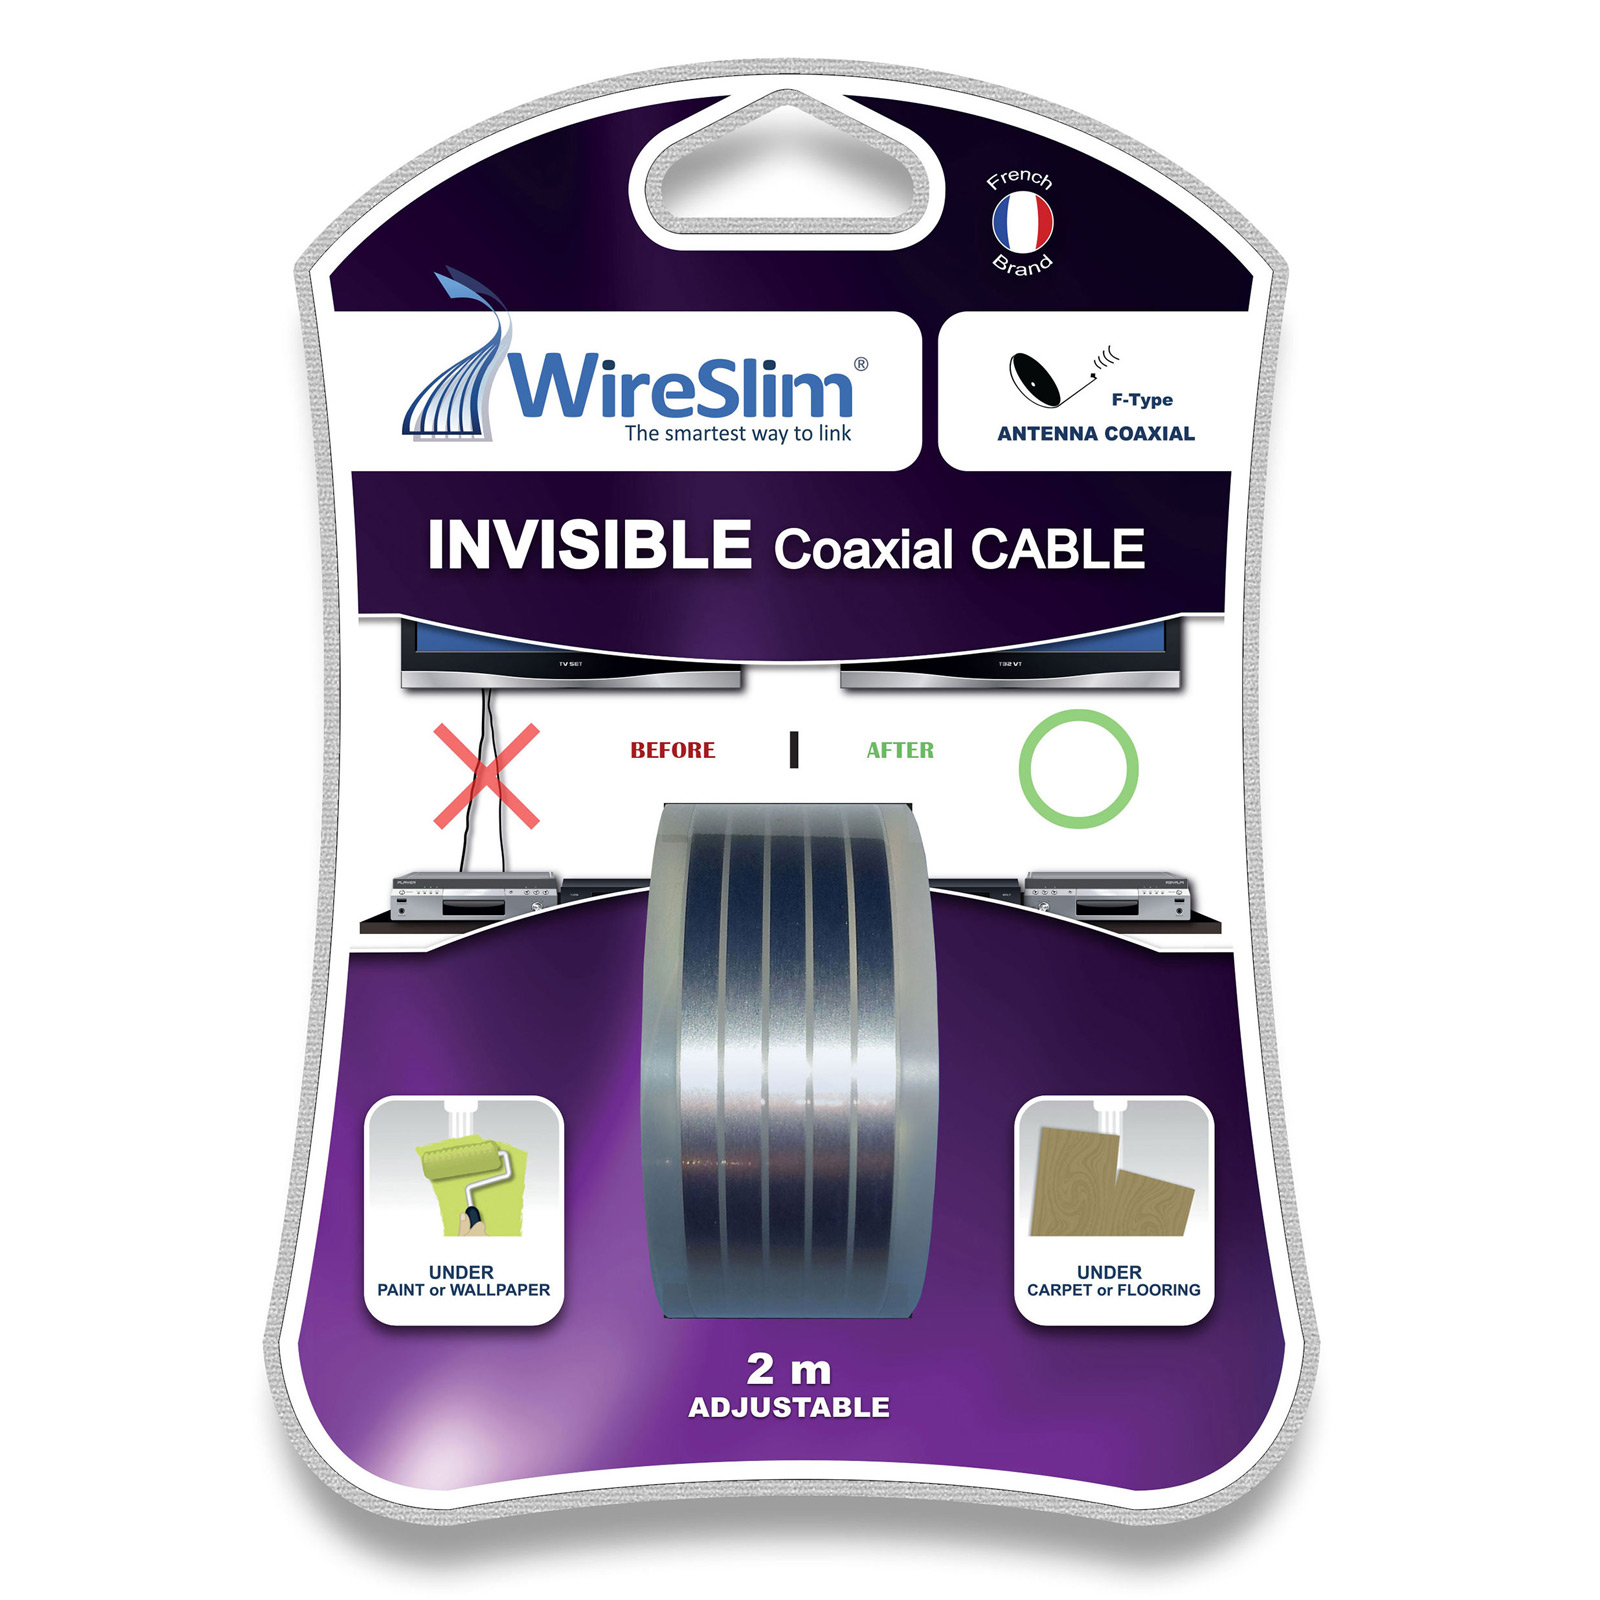 wireslim invisible coaxial cable 2 m tres c ble antenne tv wireslim sur. Black Bedroom Furniture Sets. Home Design Ideas